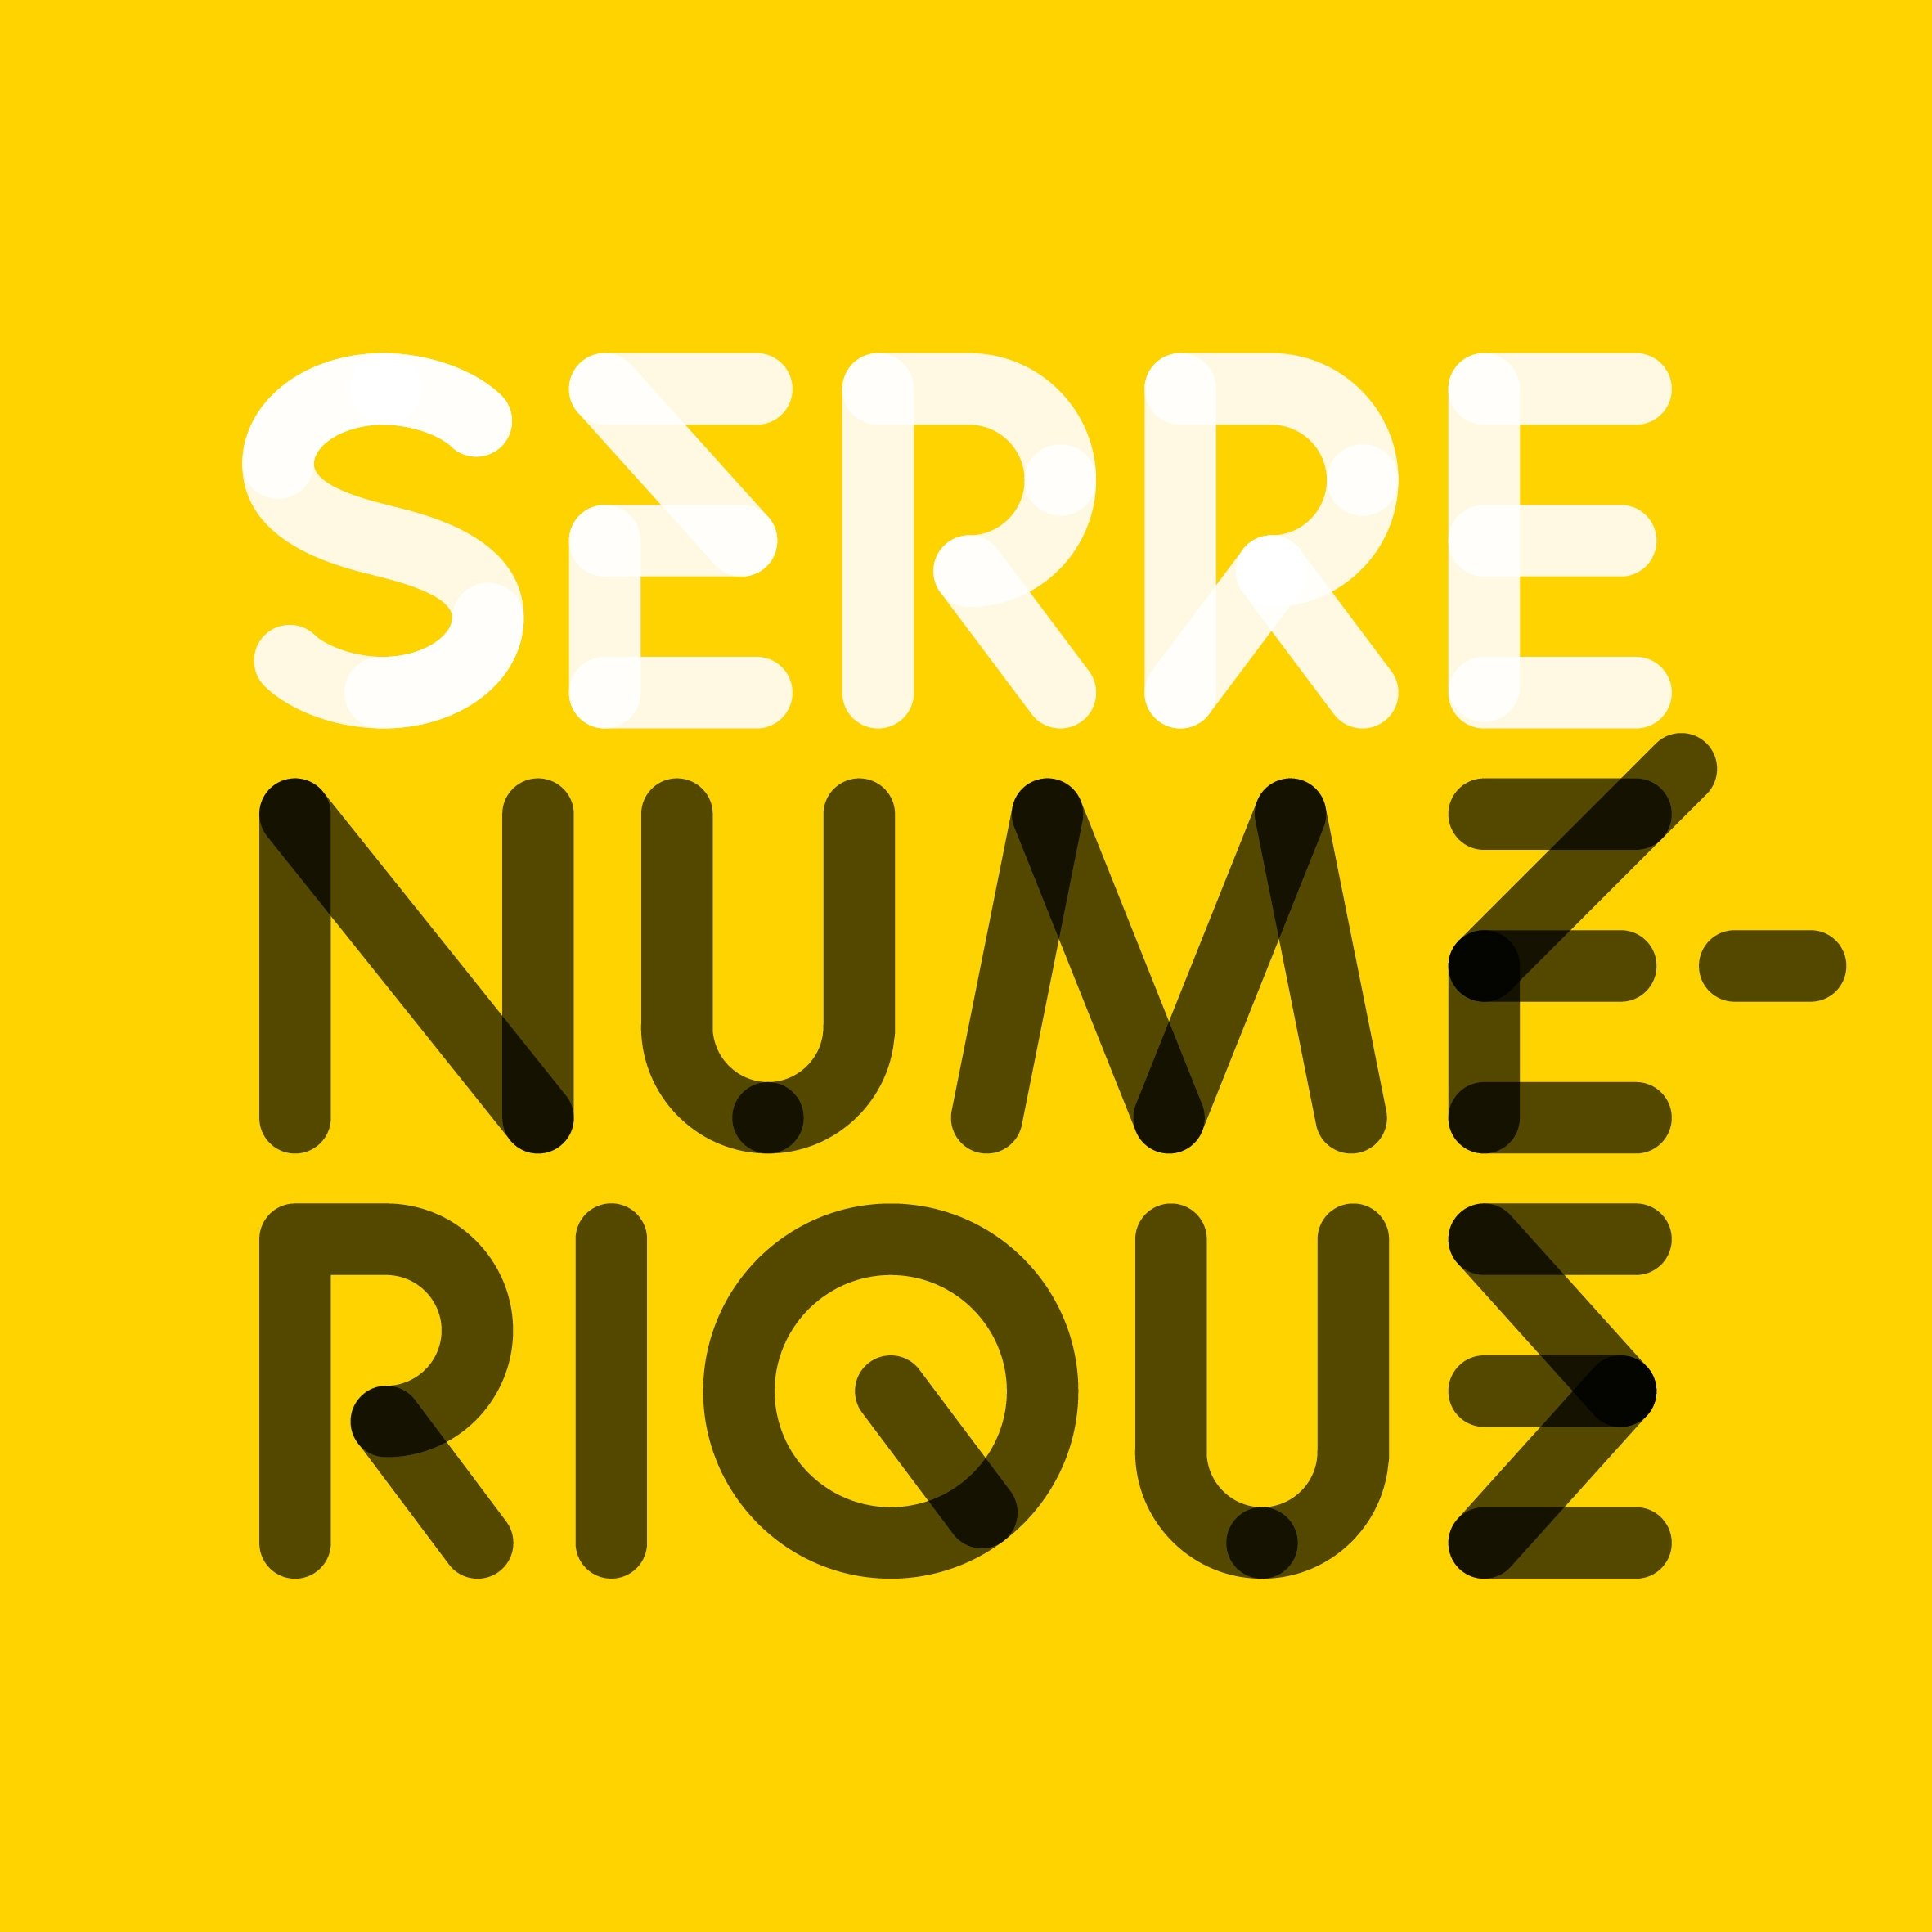 SERRENUMERIQUE LOGO